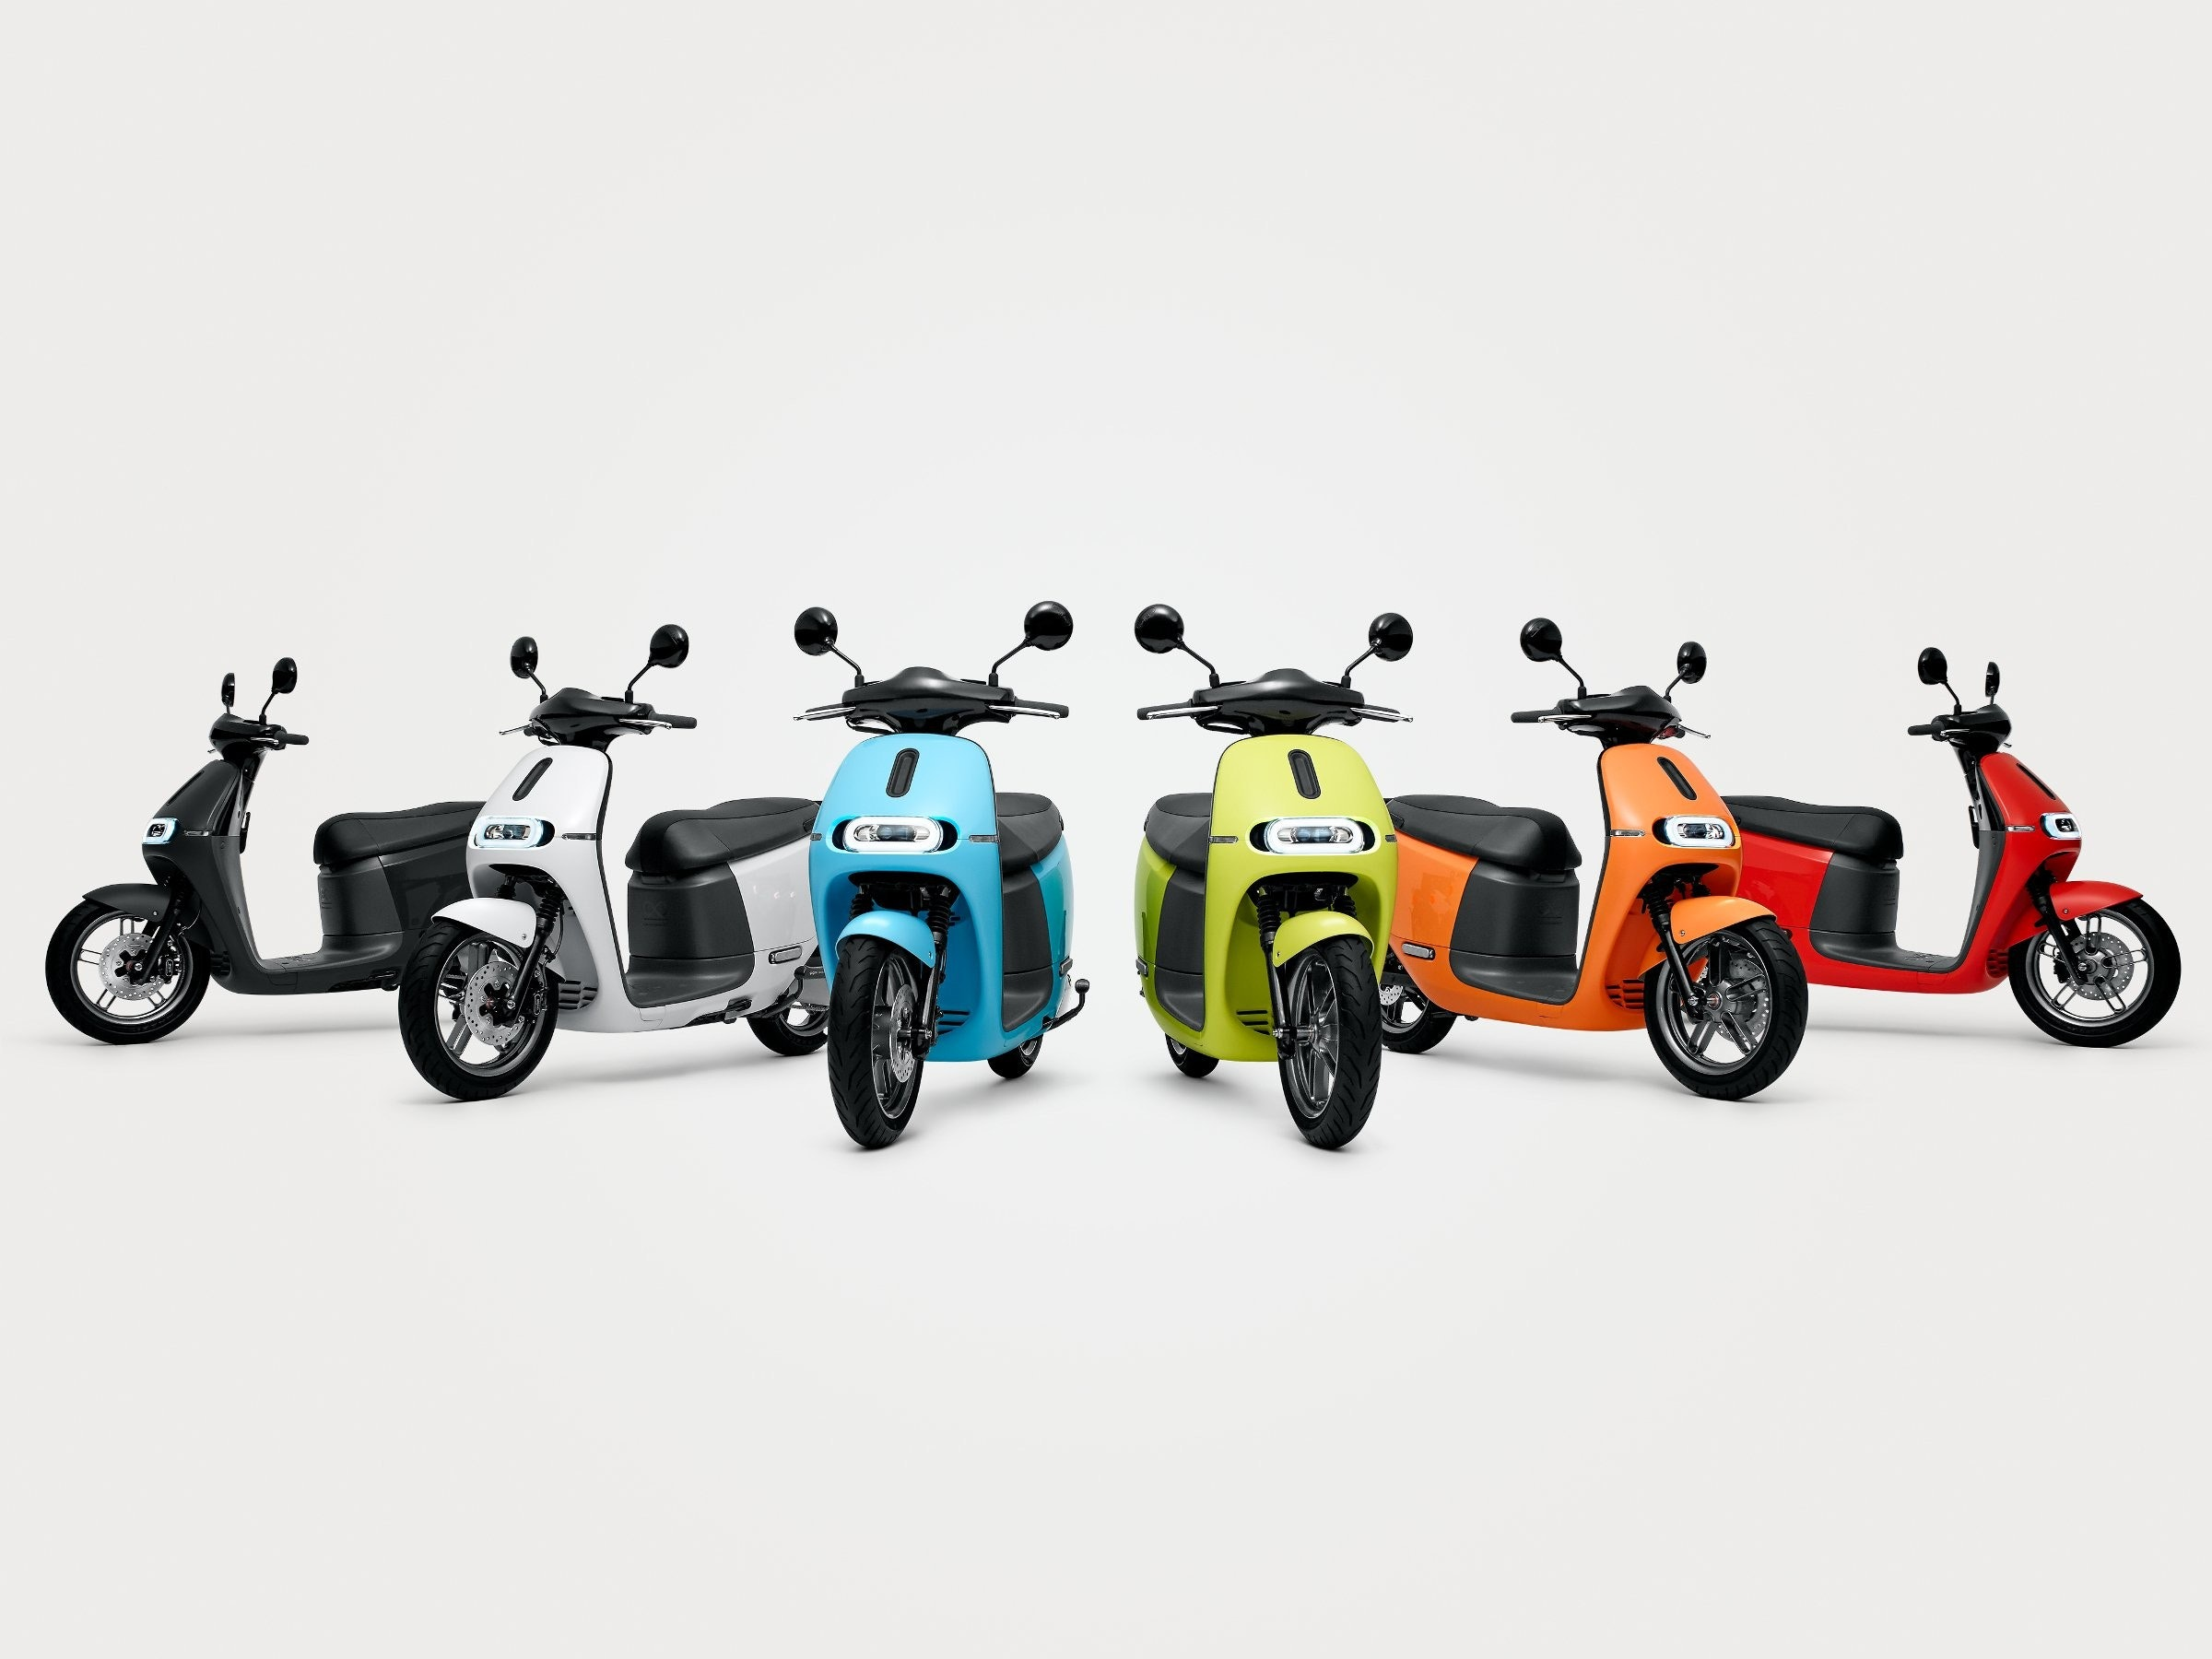 Scooter, Electric vehicle, Gogoro, , Electric motorcycles and scooters, Gogoro Smartscooter, Motorcycle, Vehicle, Electric motor, The International Consumer Electronics Show, gogoro smartscooter 2, motor vehicle, scooter, vehicle, automotive design, product, bicycle accessory, car, product, motorized scooter